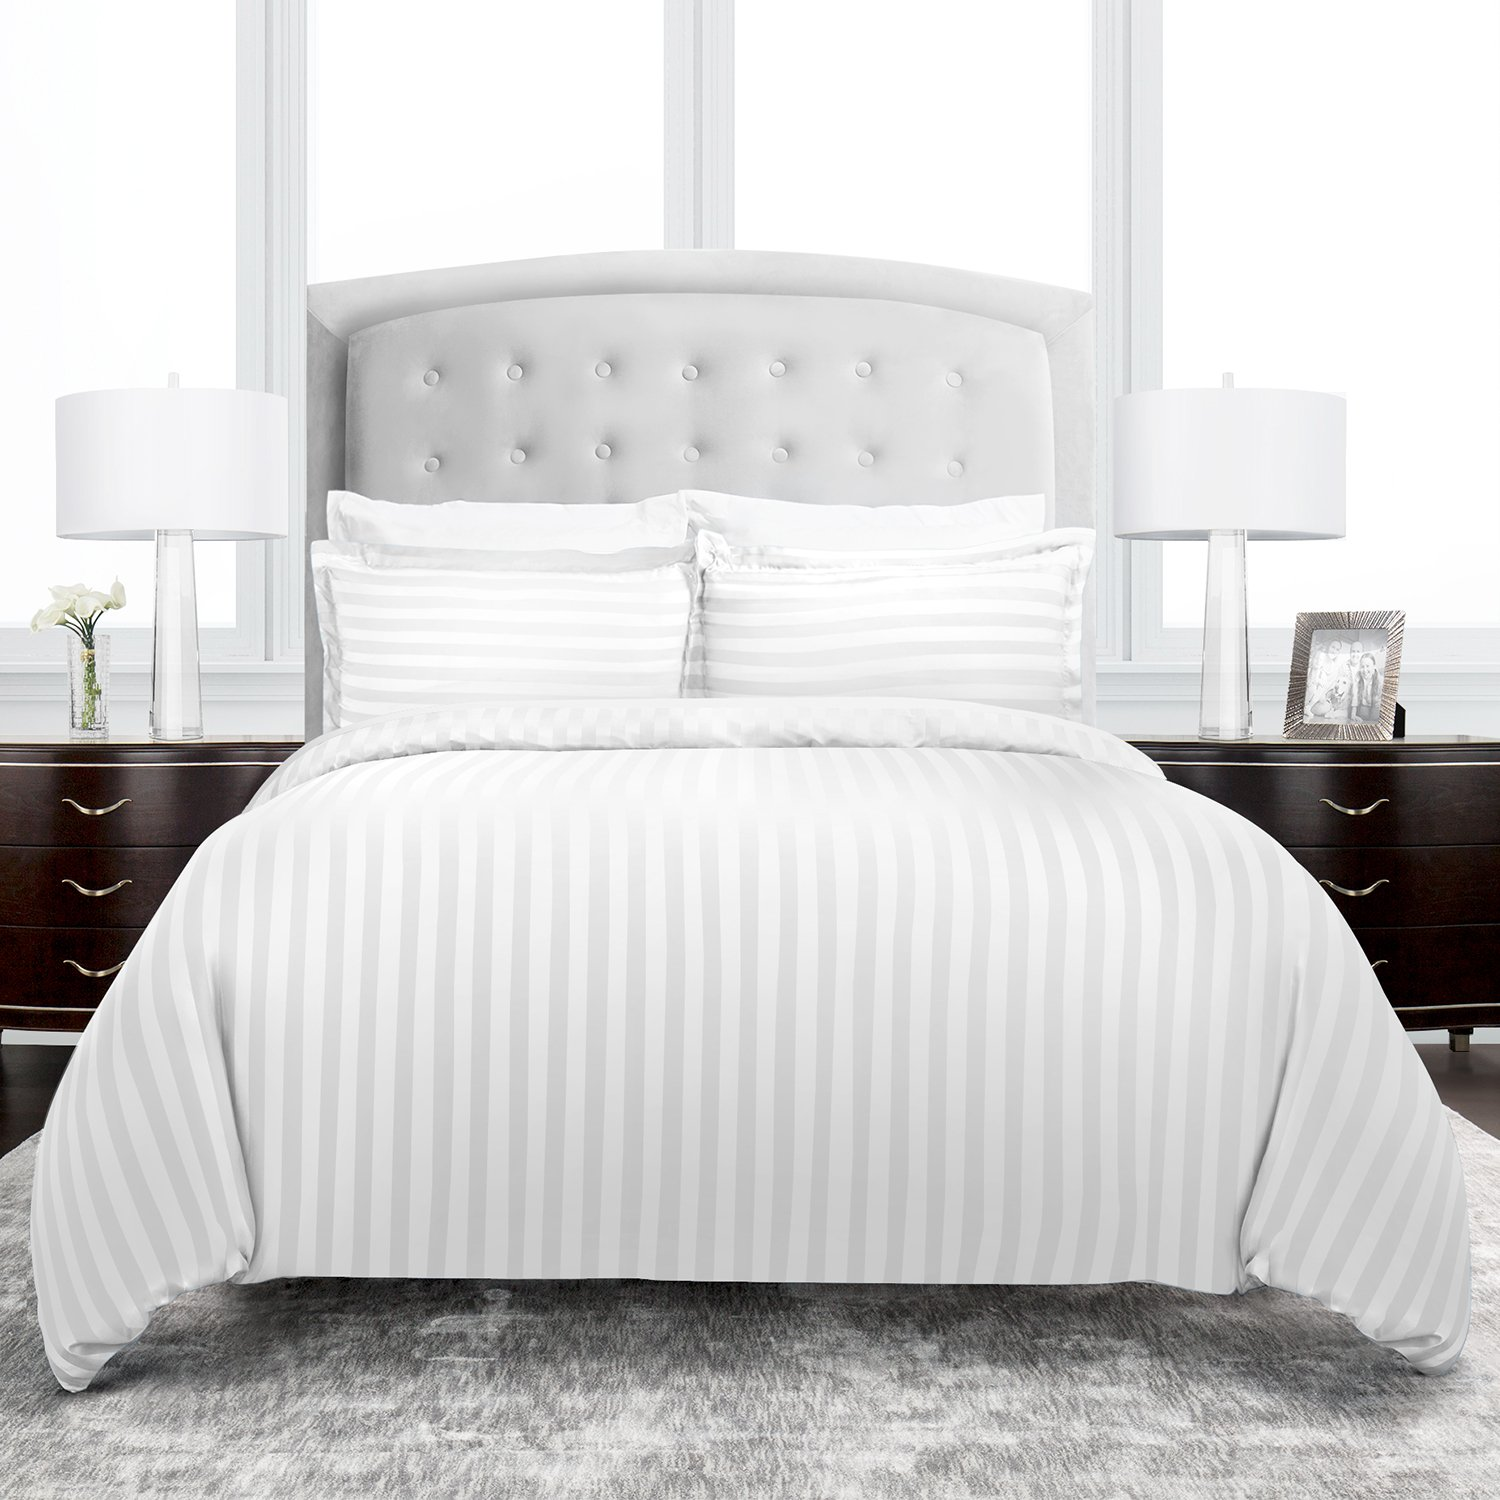 Hypoallergenic -/King//California King White BLL-BHC3PCDBBYDVT-K//CK-WHT Luxury Soft Brushed Microfiber with Matching Shams Beckham Hotel Collection Dobby Striped Duvet Cover Set